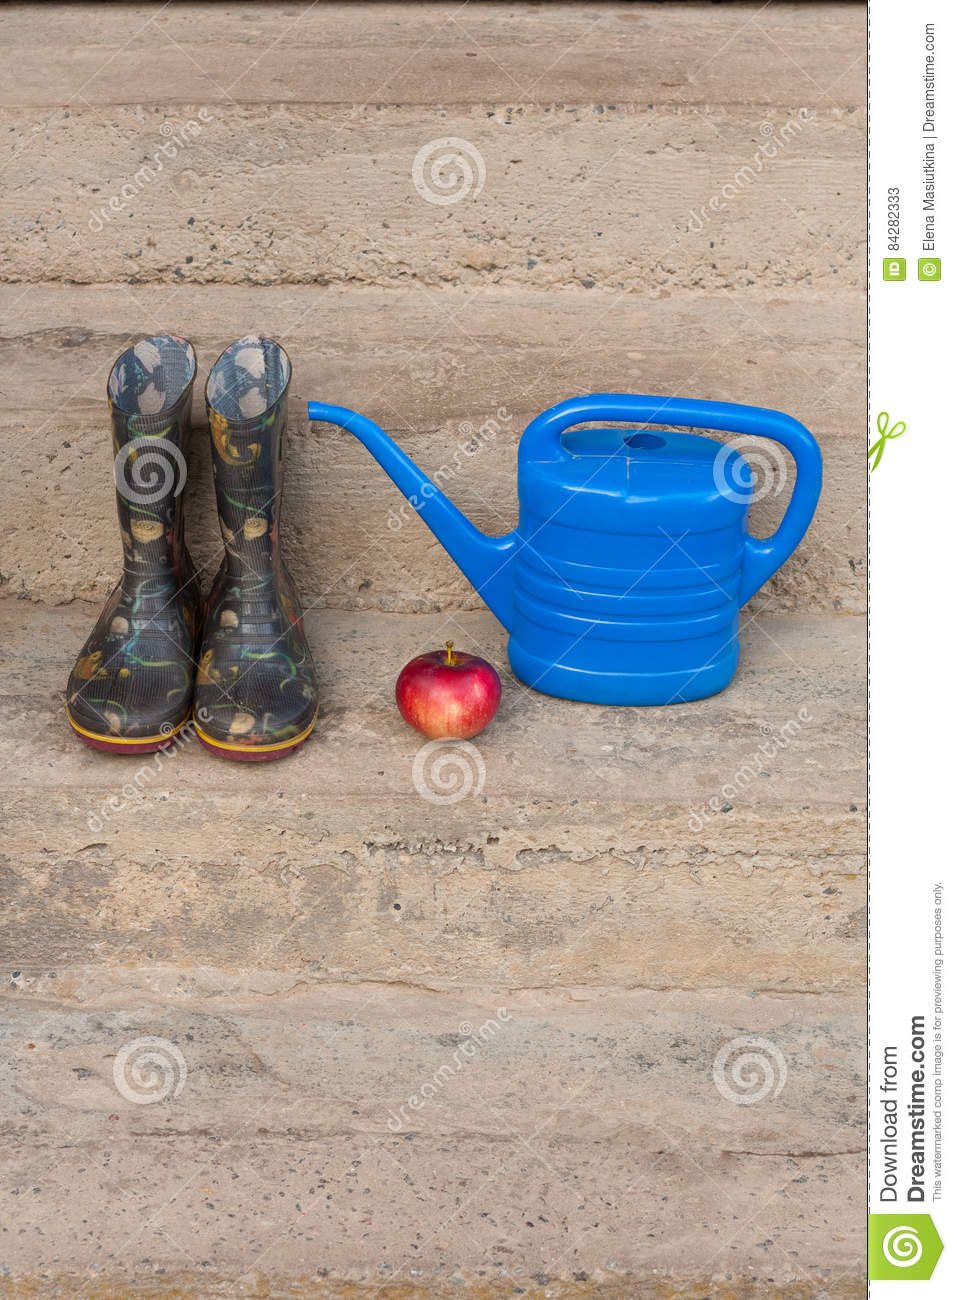 Rubber Boots, Red Apple And Small Blue Watering Can